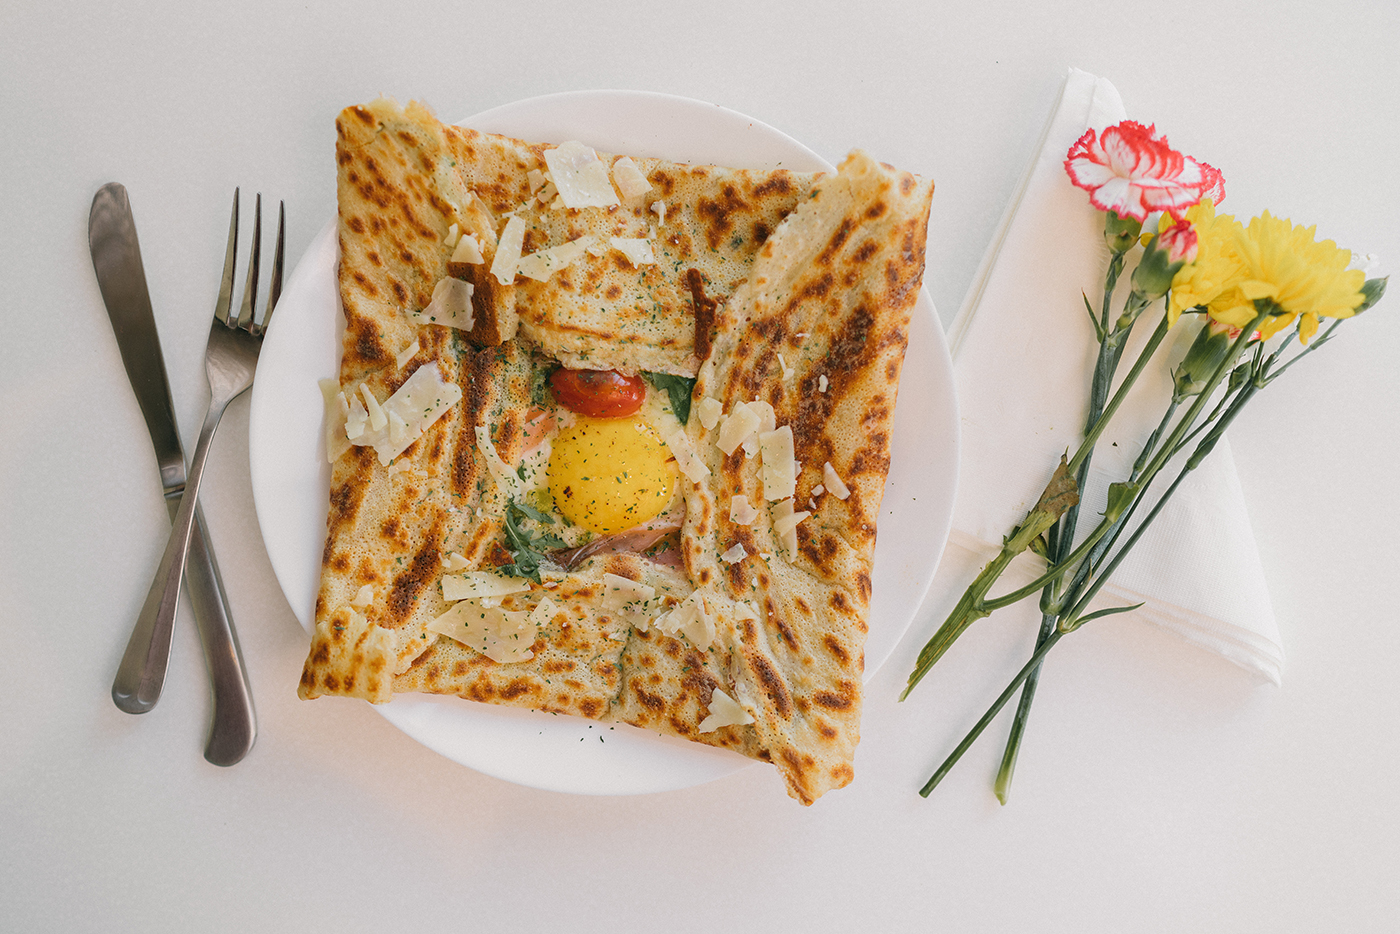 Dali Crepes' Breakfast in Montenegro crepe can come in either a savory or breakfast (pictured) option.